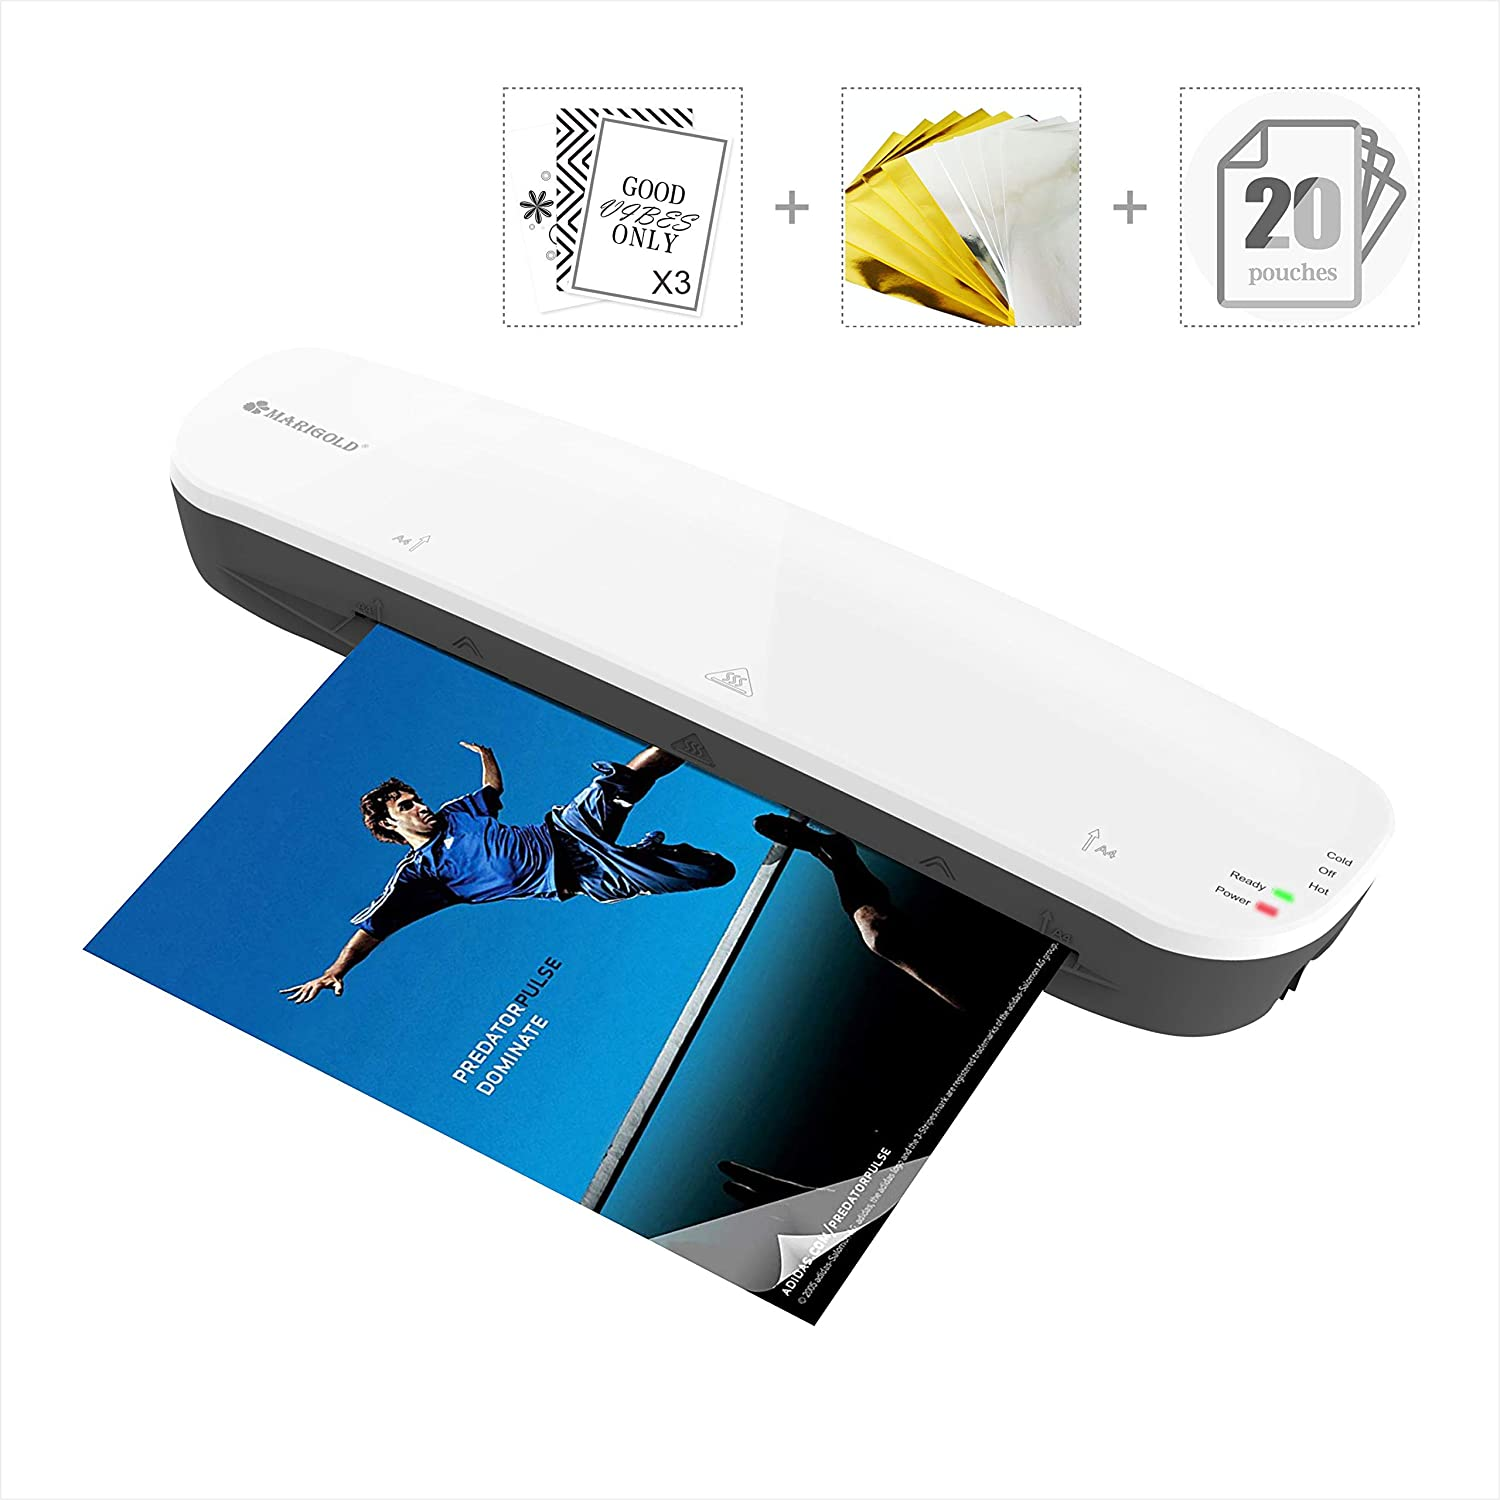 9-inch Laminator Machine Foil Application - MARIGOLD Thermal Laminating Machine with 20 laminating sheets / pouches, 3 tags and some reactive gold foil sheets (LM401)